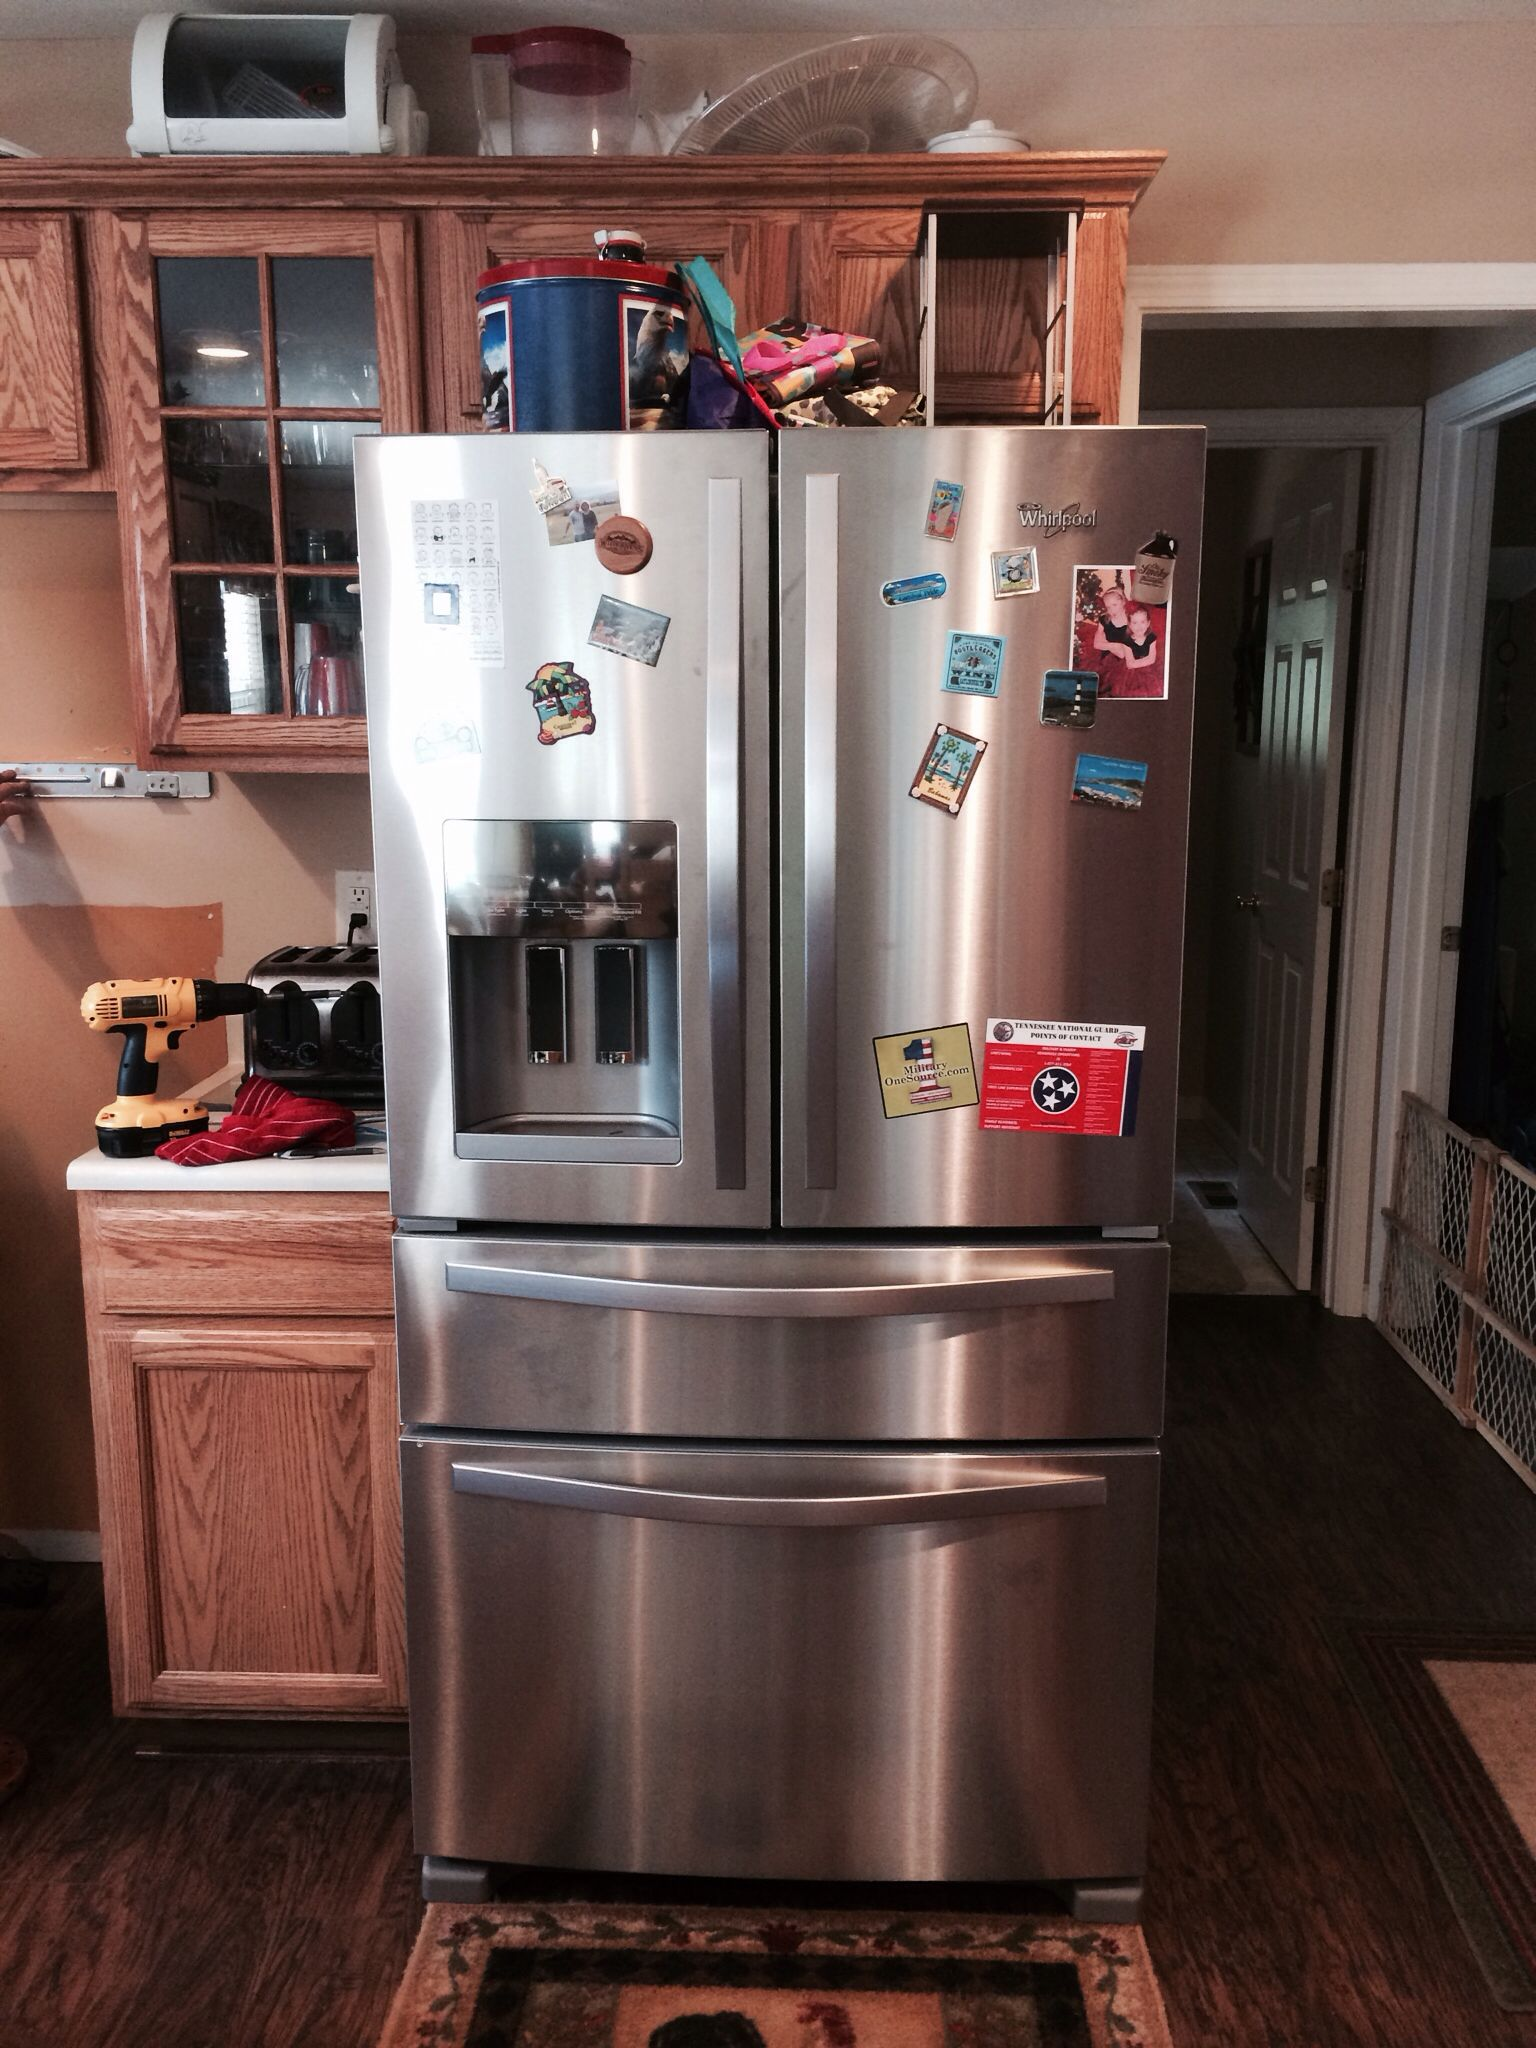 New Fridge French Doors Kitchen Appliances Home